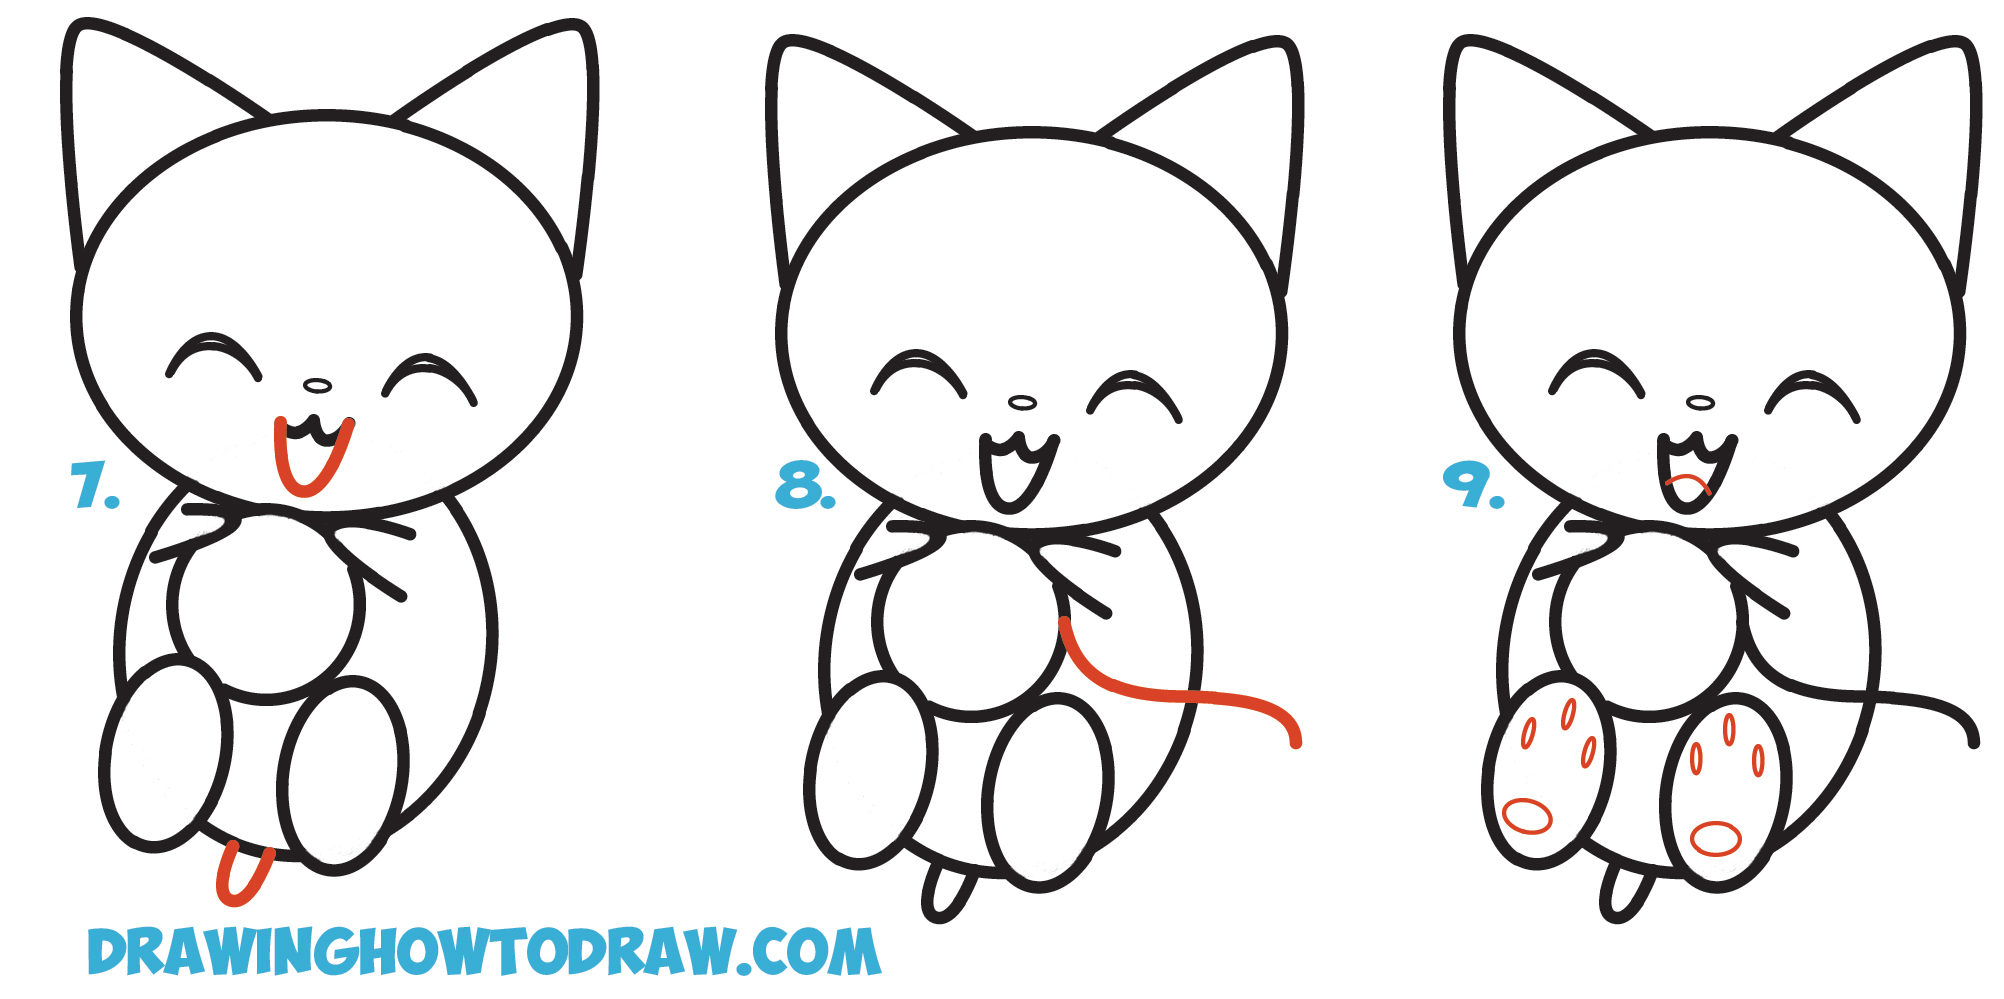 Learn How To Draw Cute Kawaii Chibi Cartoon Kitten Cat Playing With Yarn  Step By Step